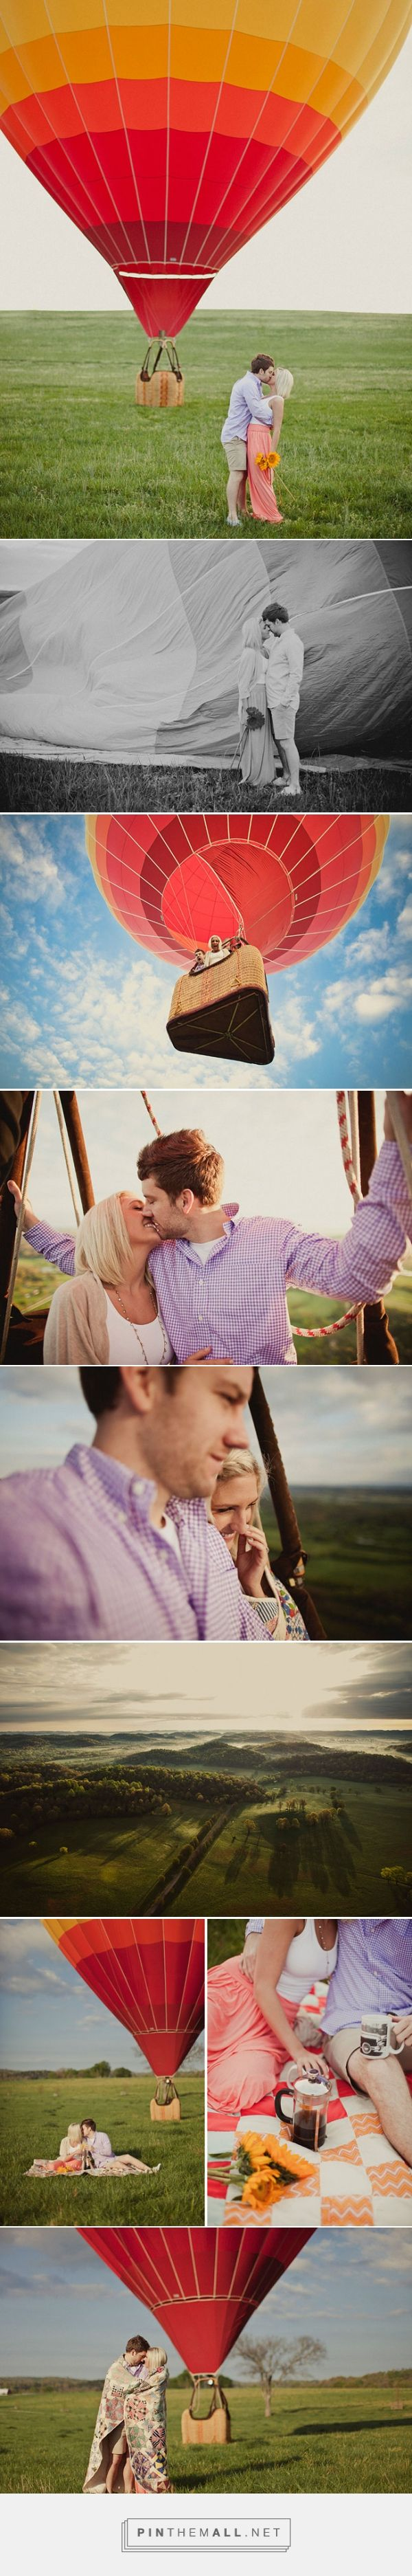 """Adorable, fun, creative series. """"Hot Air Balloon Engagement"""" - Tennessee (Lindsey + Jarrod) 